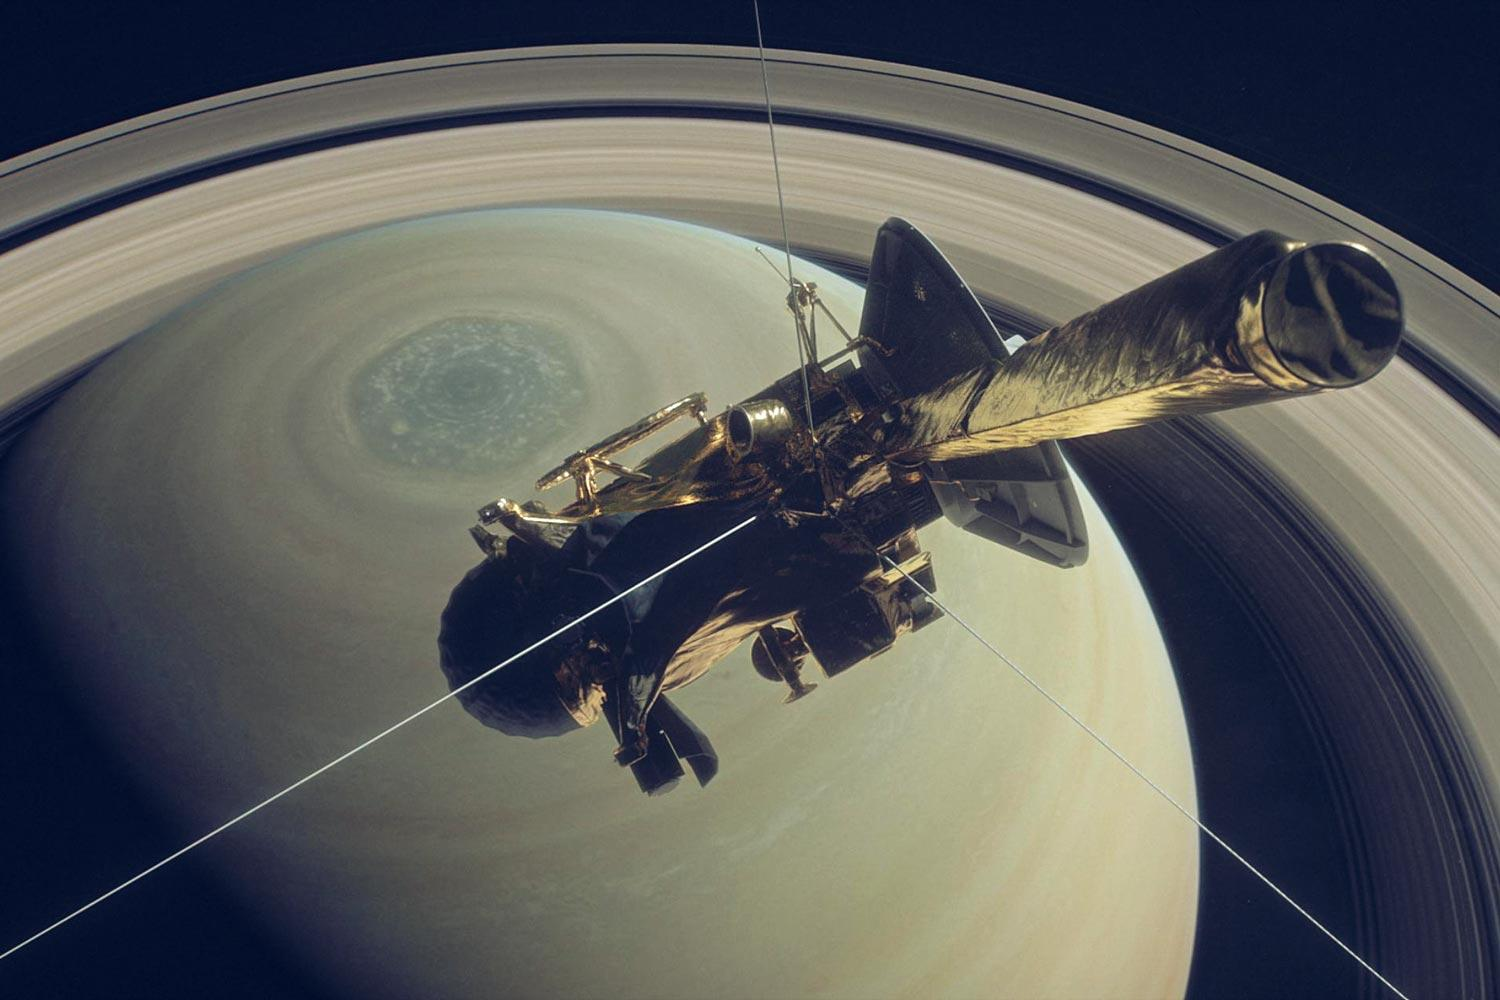 The Saturn system has been Cassini's home for 13 years, but that journey is just hours from ending.